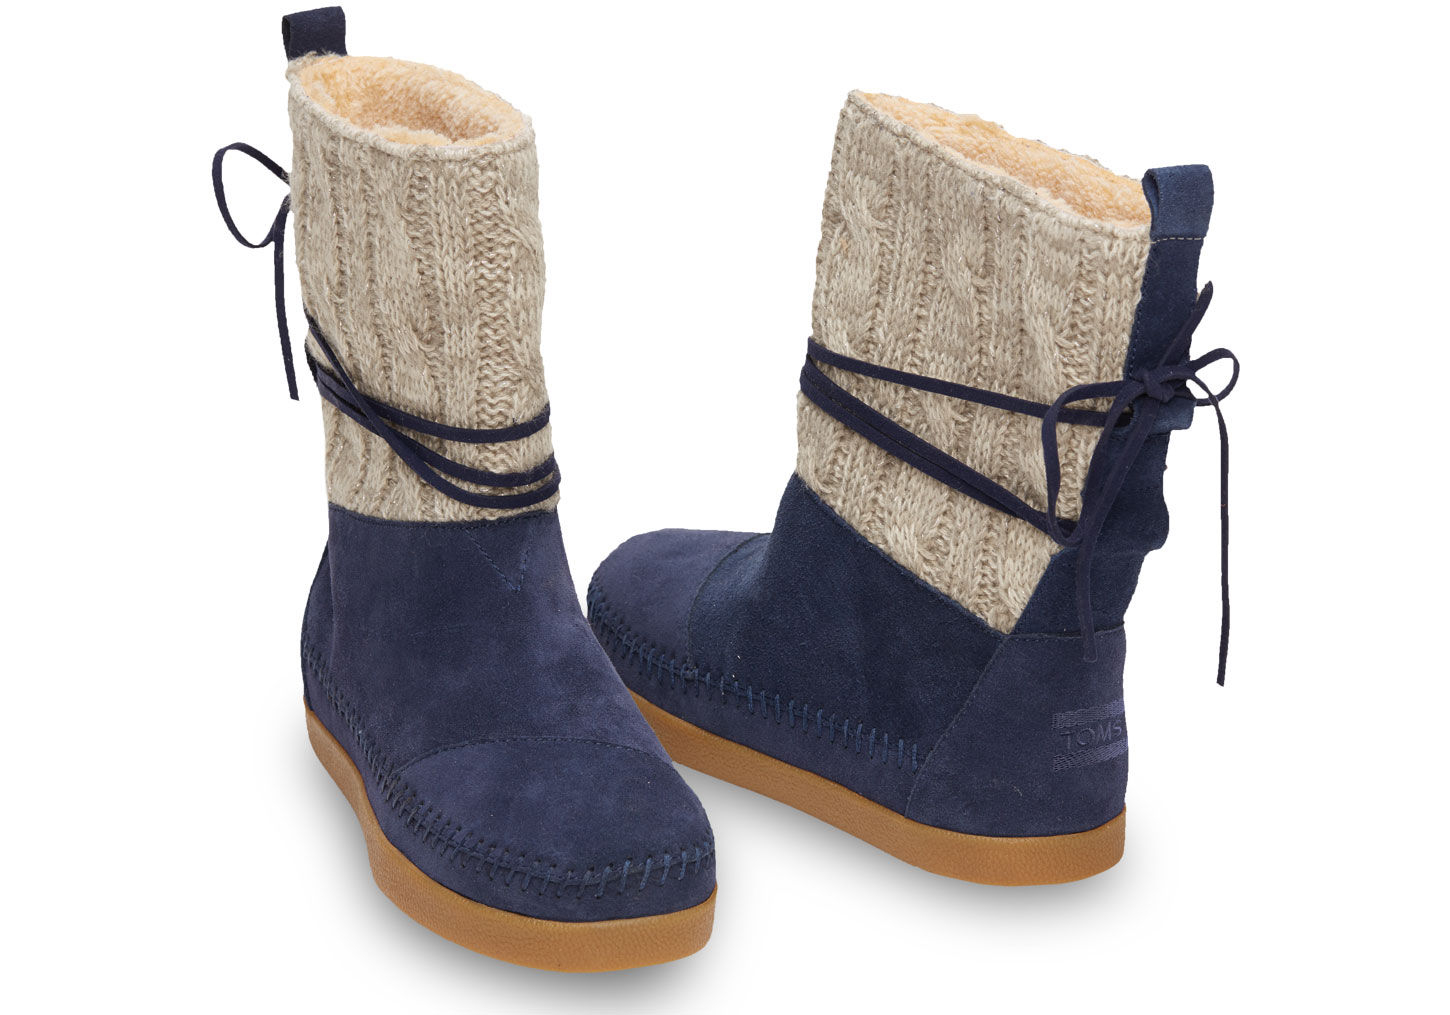 558eecfb9ab TOMS Blue Navy Cable Knit Suede Women's Nepal Boots